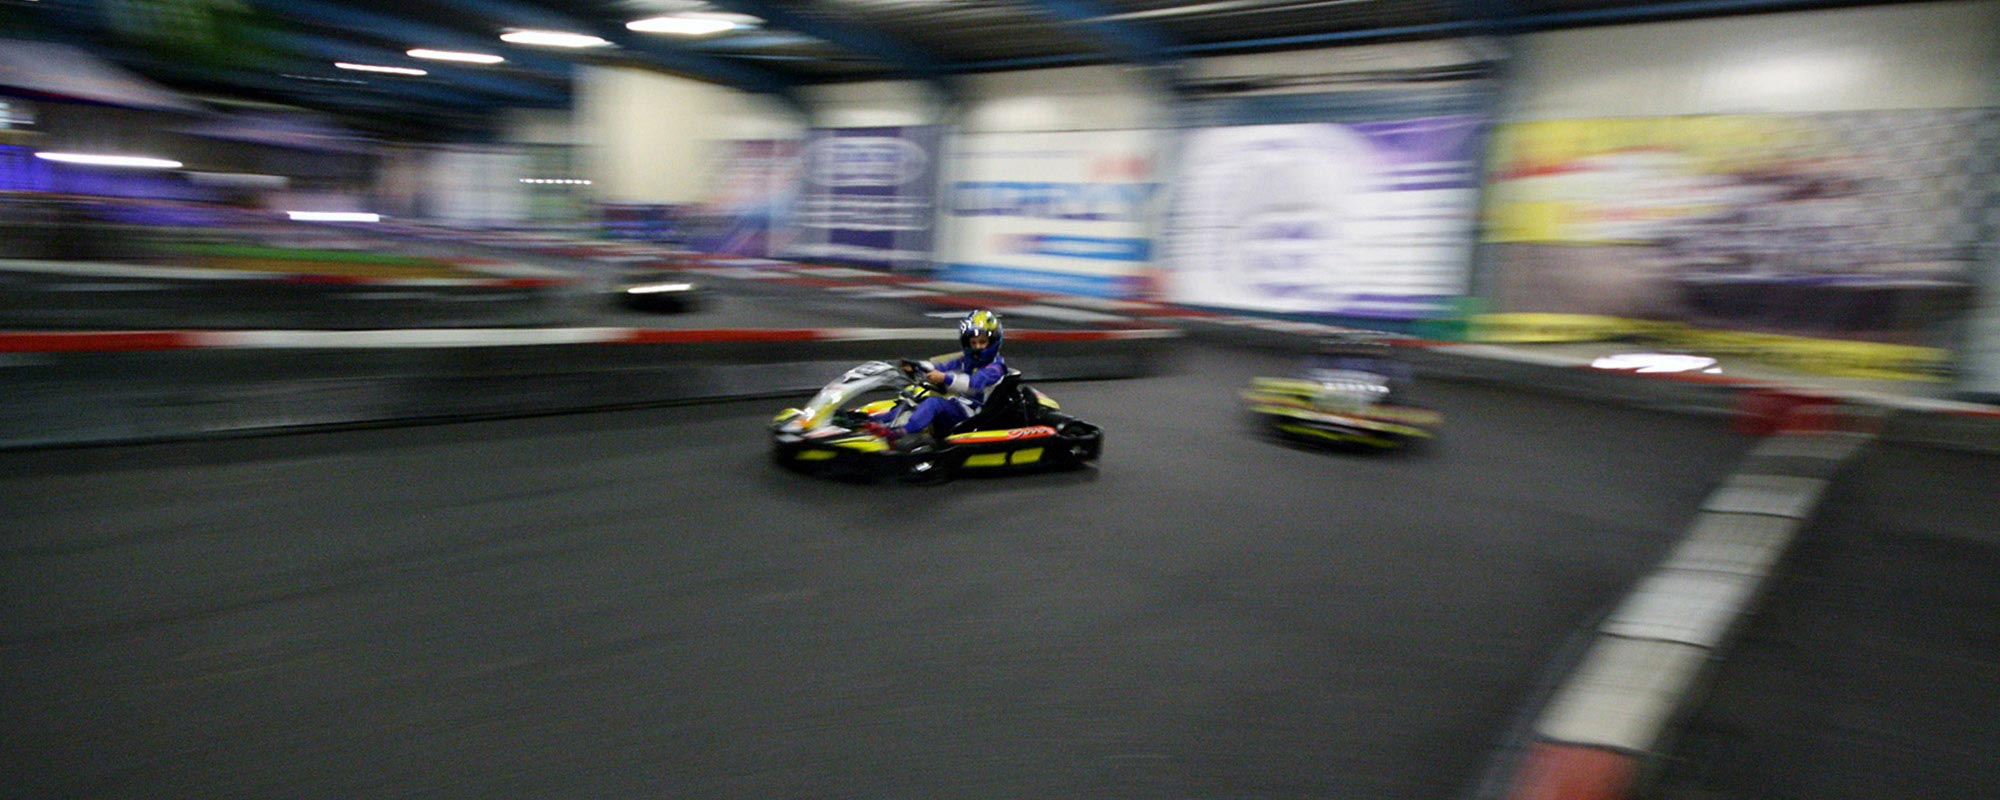 ebafkc-juniorkarting-2000x800-17